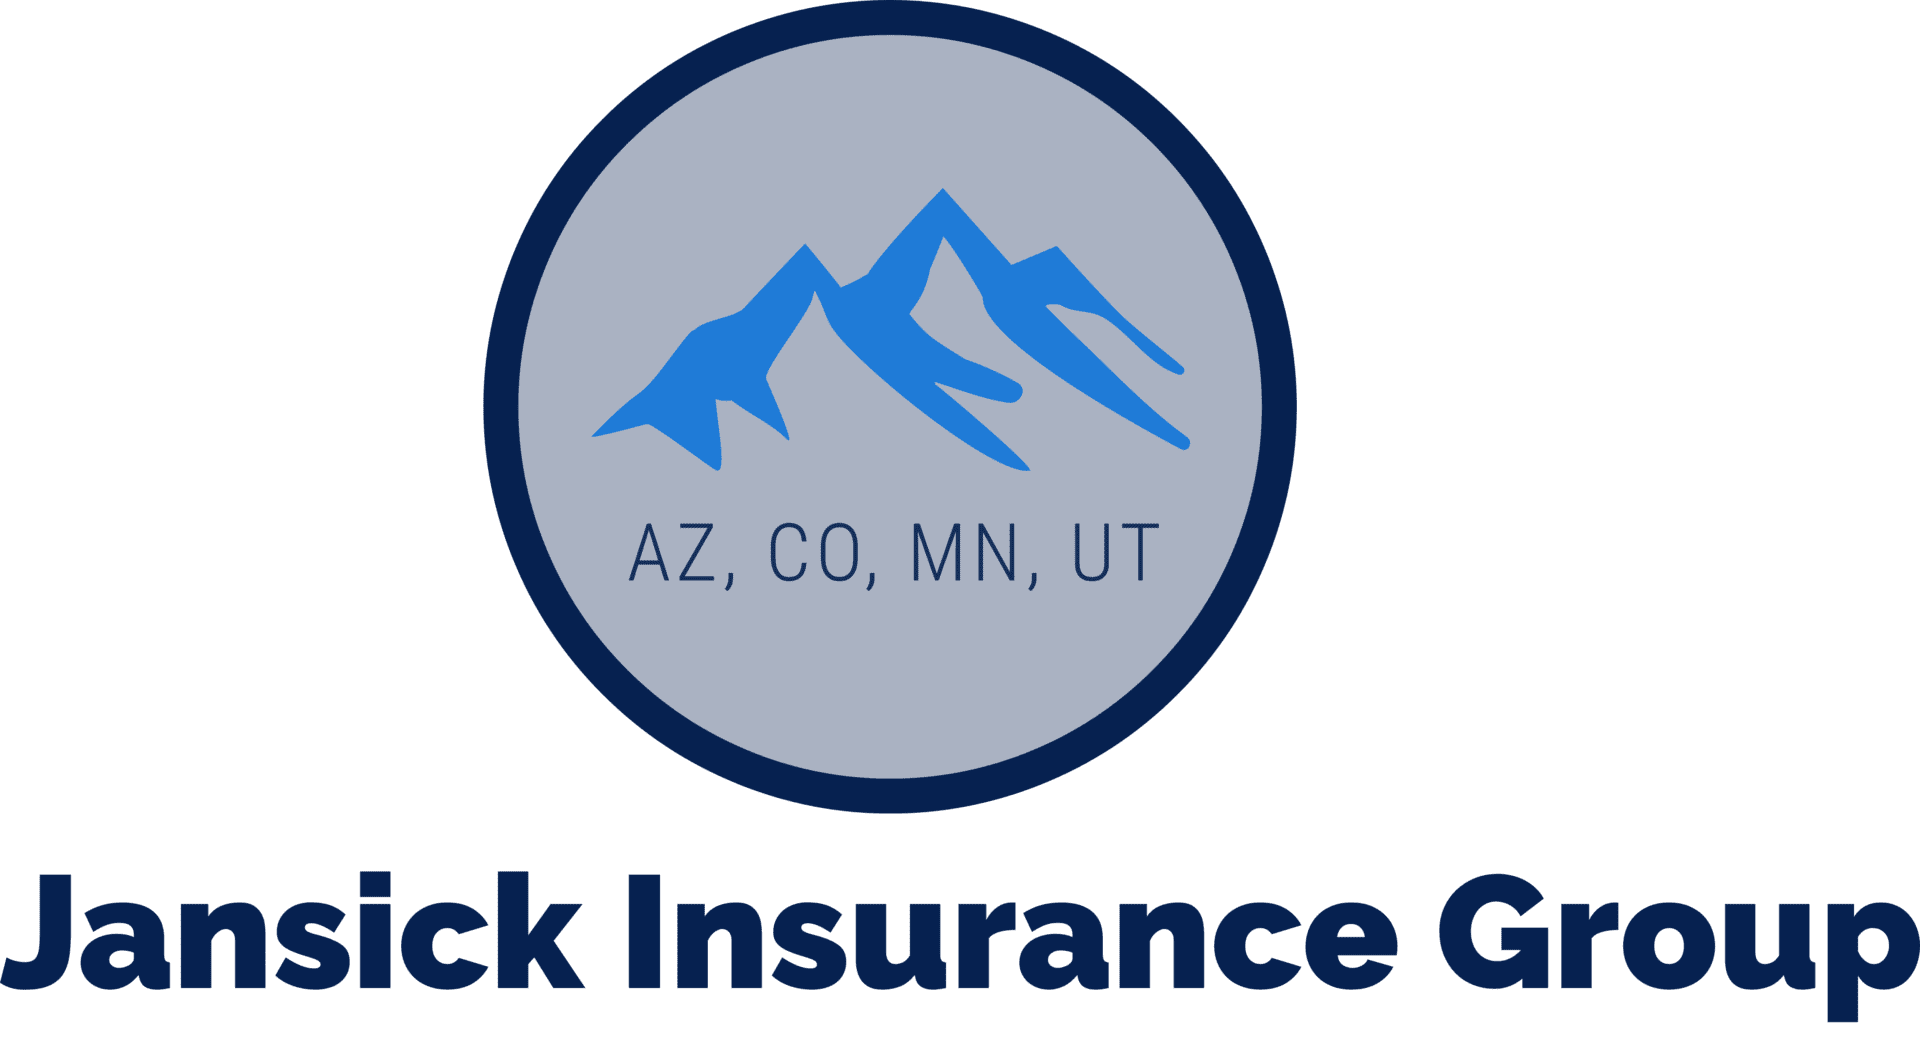 Jansick Insurance Group 2019